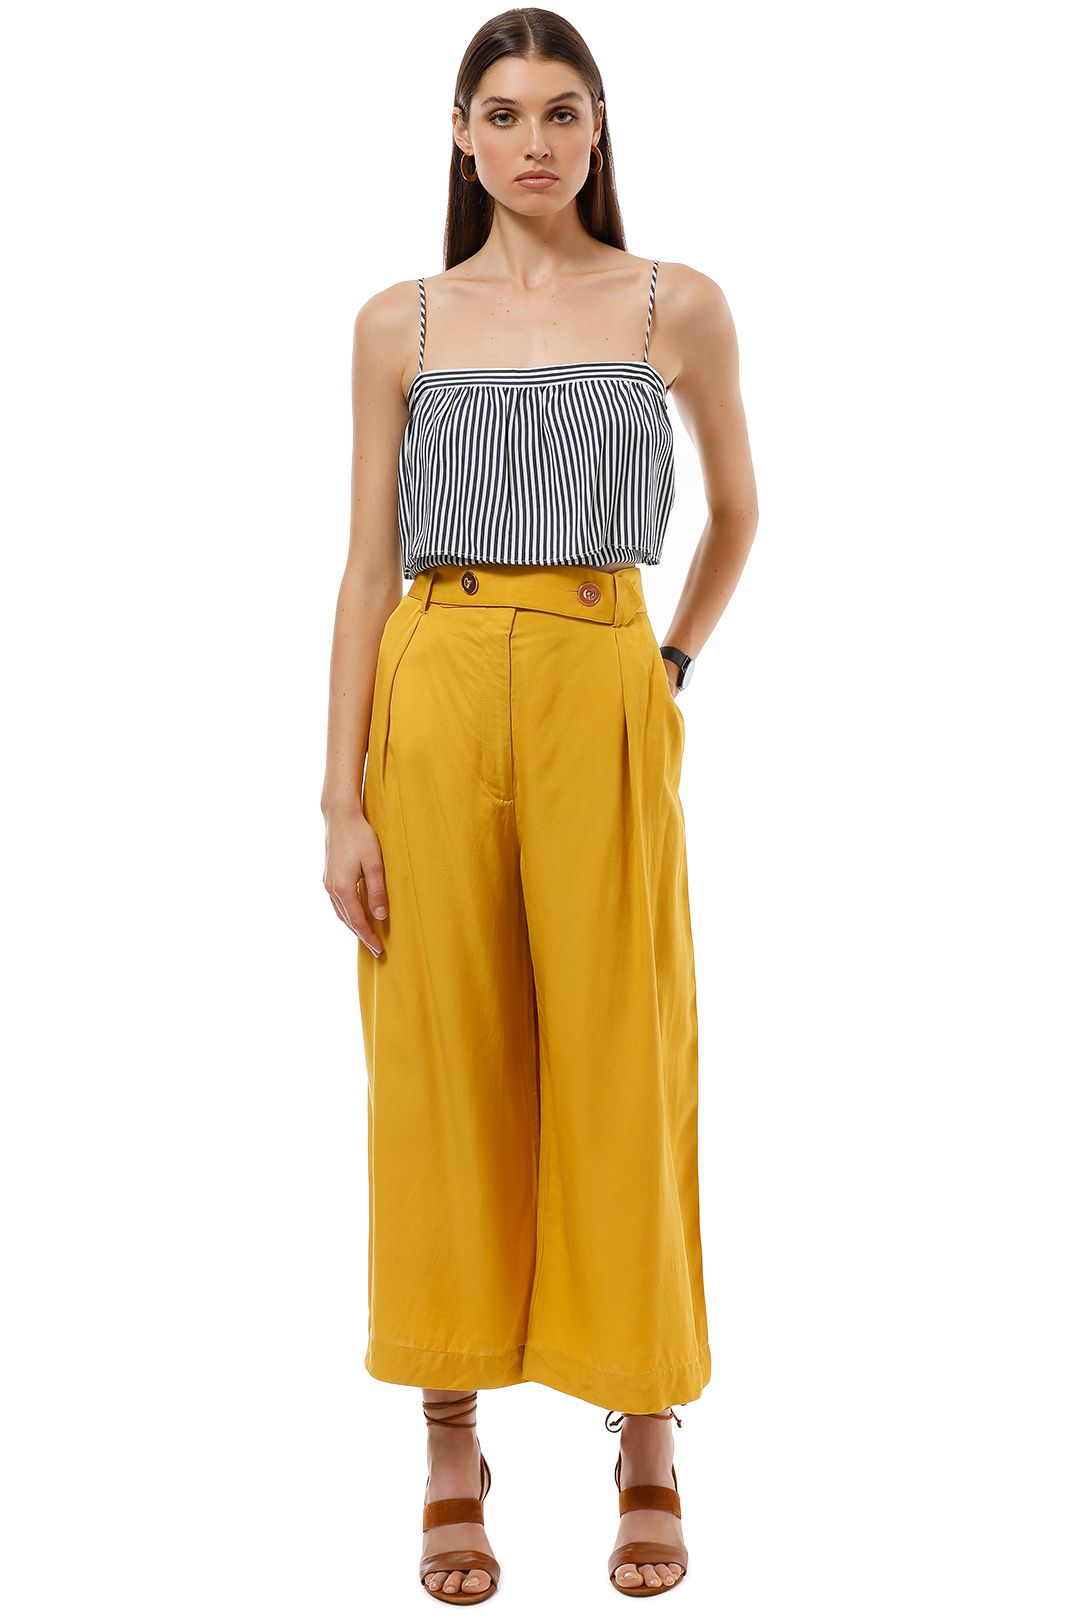 Ginger and Smart - Morph Pant - Mustard Yellow - Front